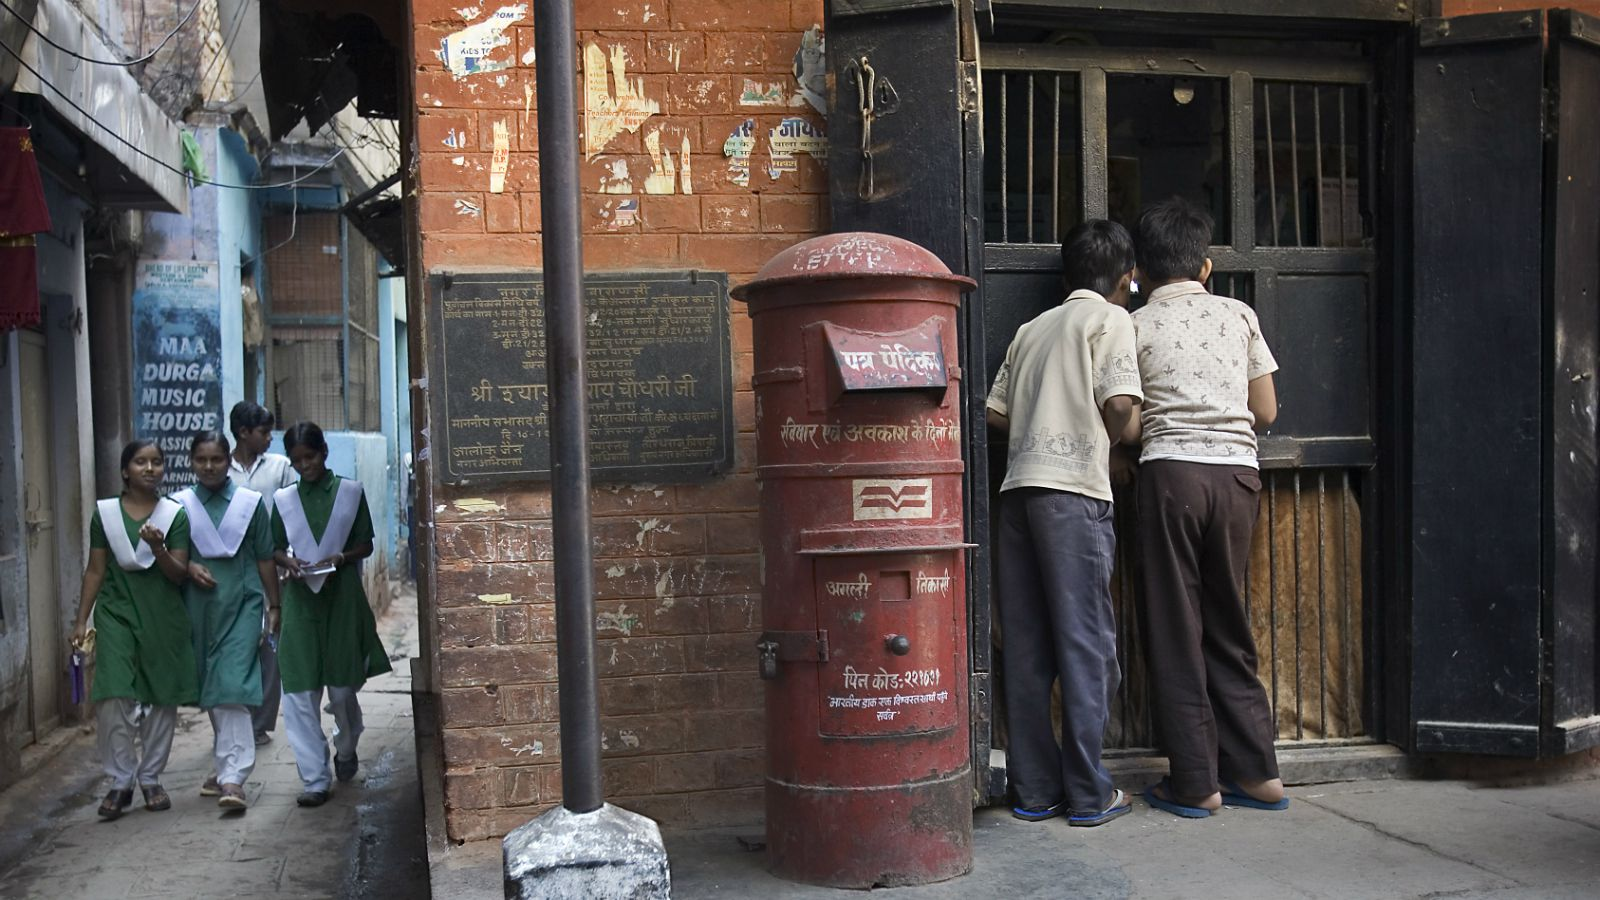 Children at a post office in Varanasi.